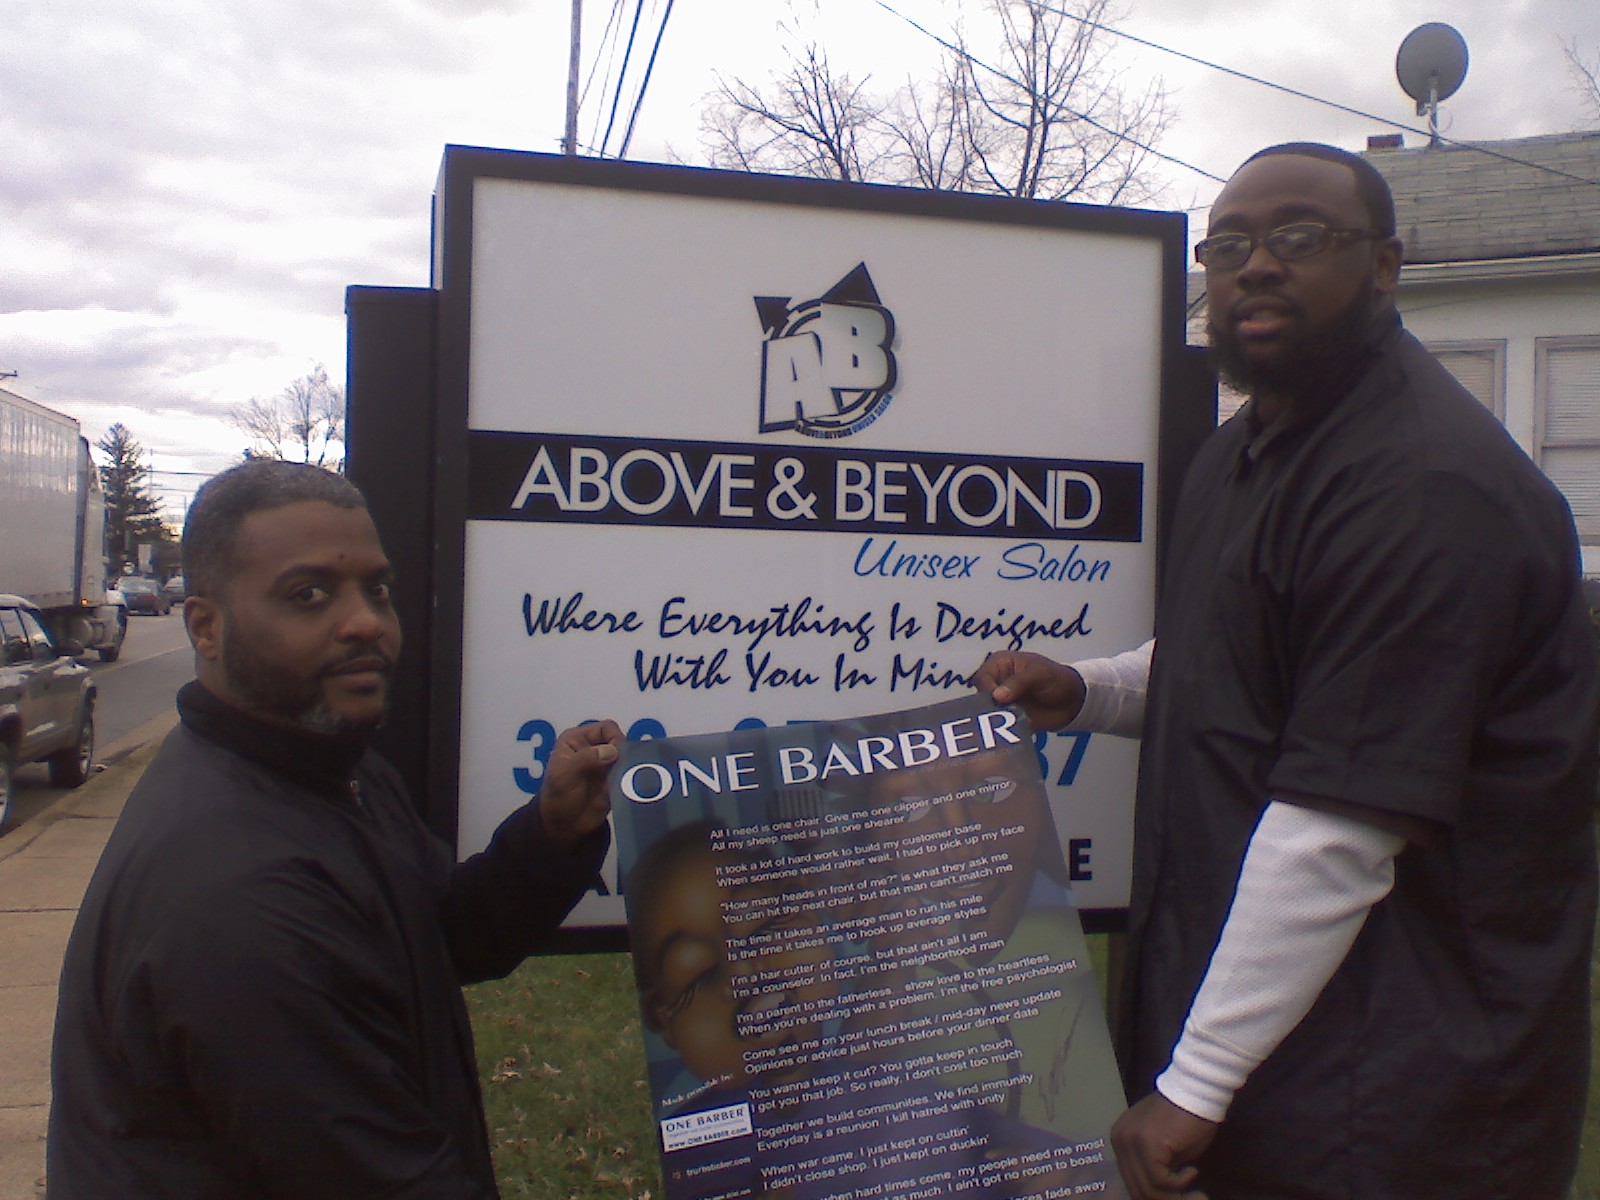 One barber delaware barber shops in de hair shops for Above and beyond beauty salon